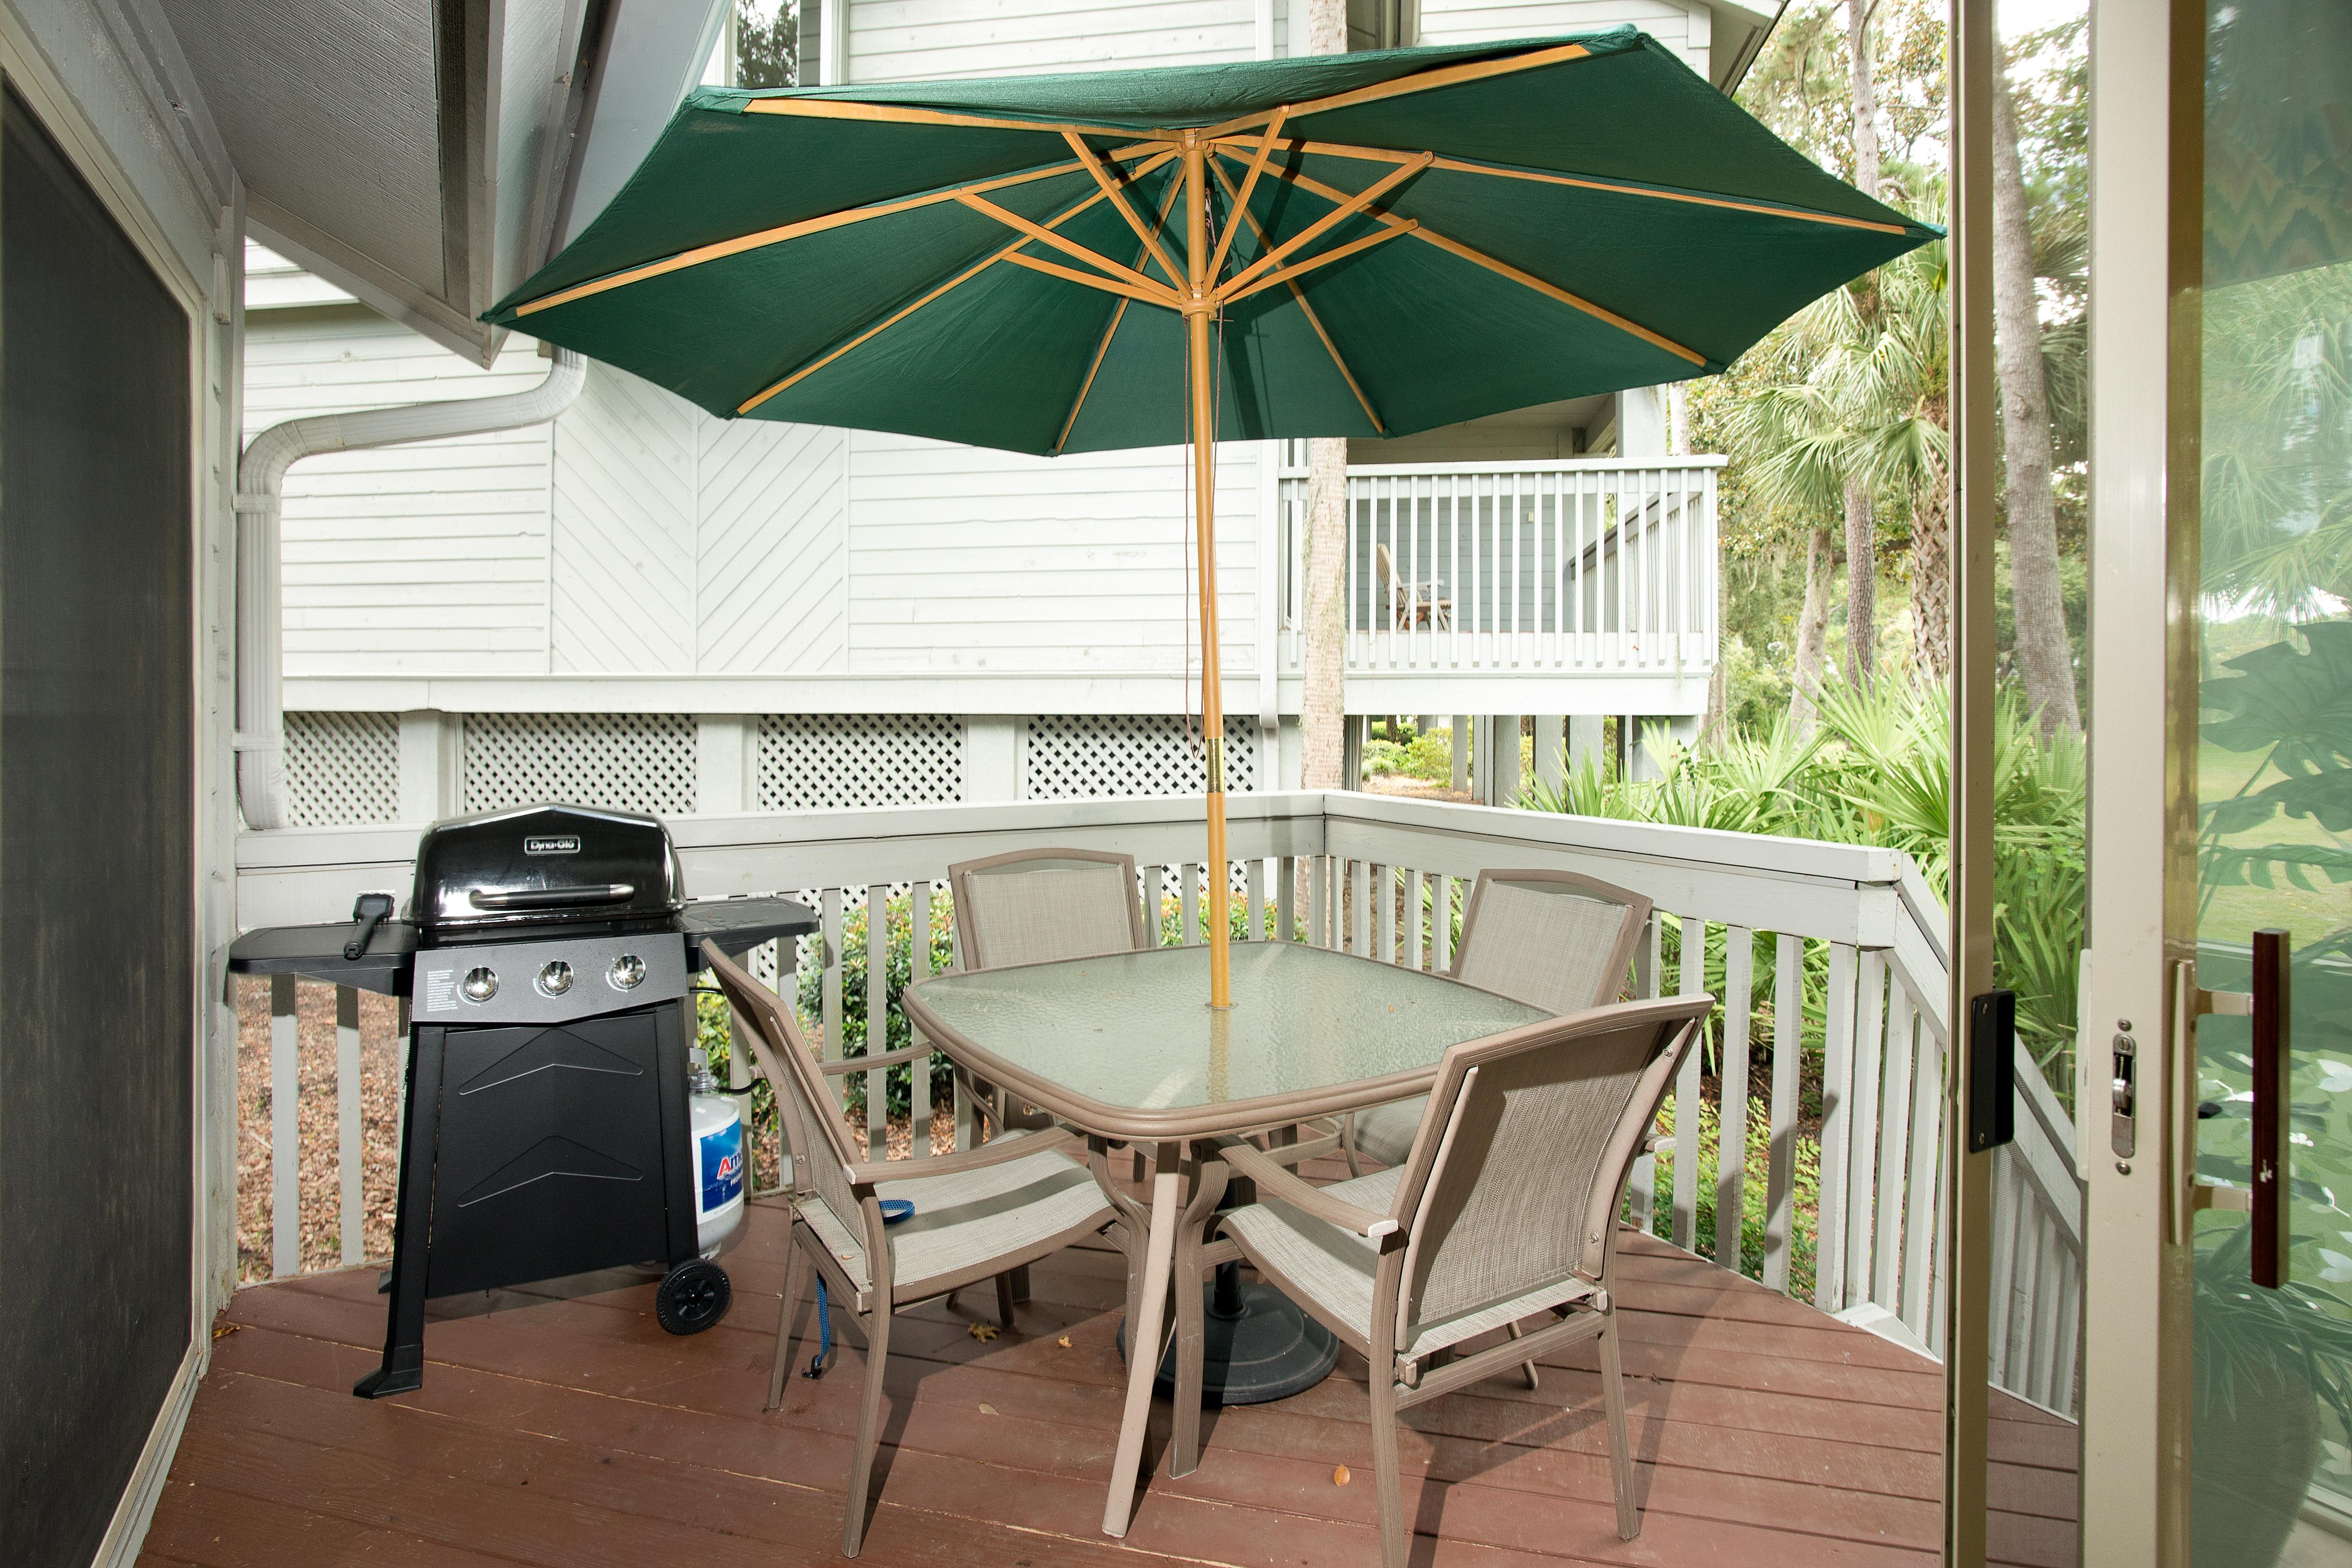 Sizzle steaks and dine alfresco on the back patio.